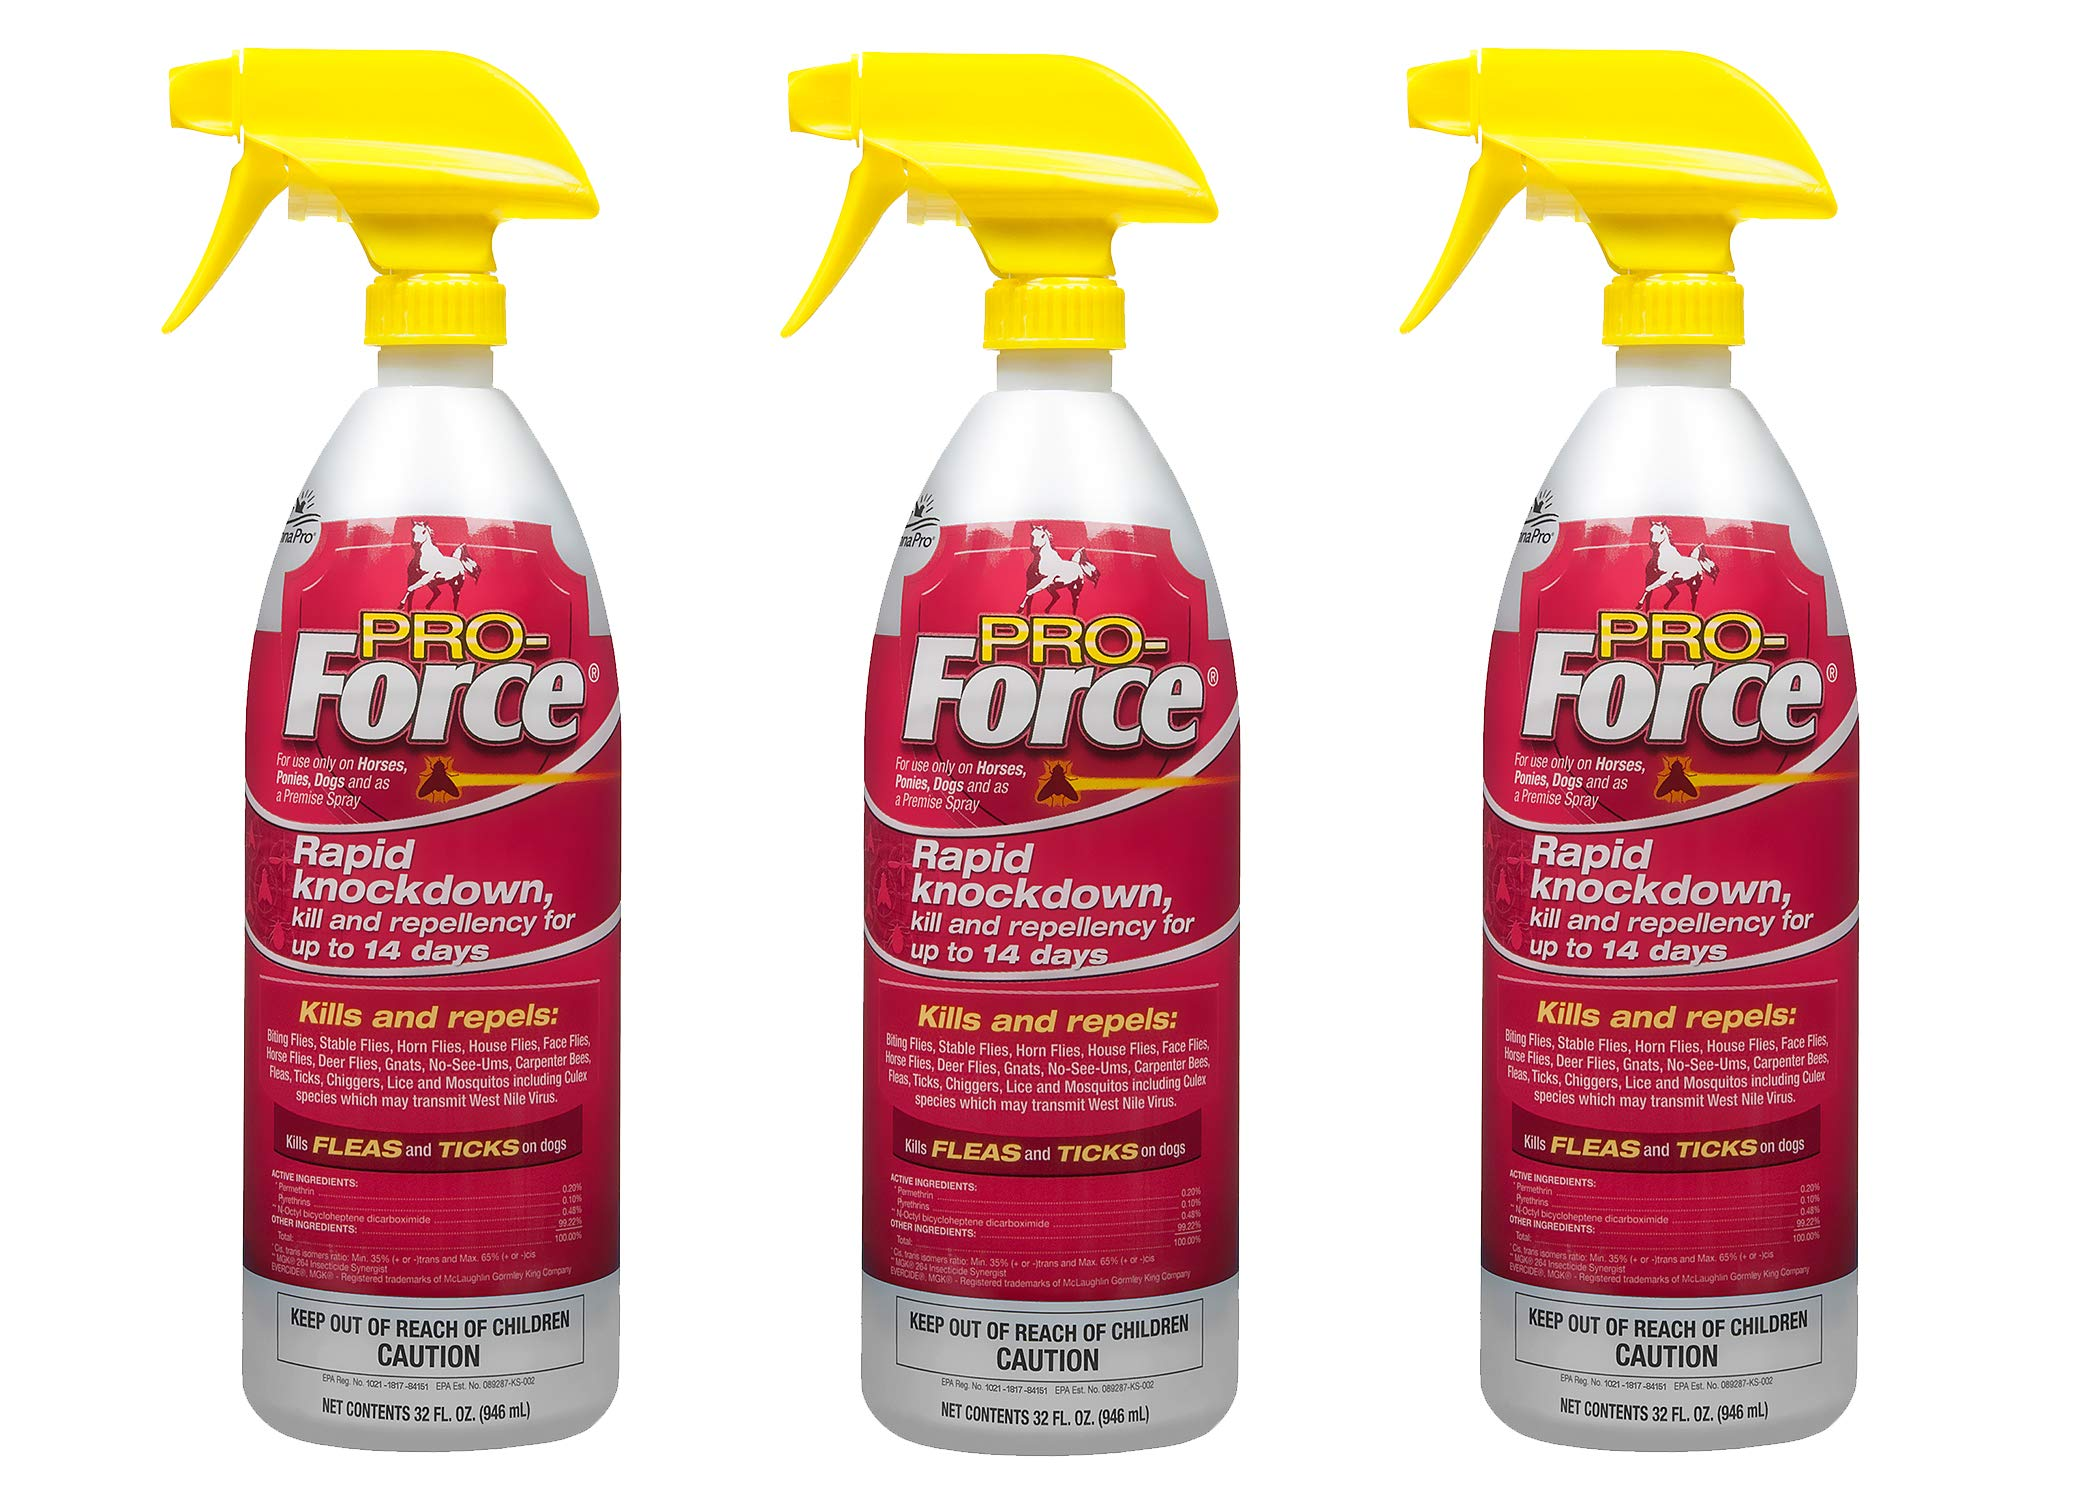 Manna Pro Pro-Force Fly Spray, 32 Ounces (Pack of 3) by Manna Pro